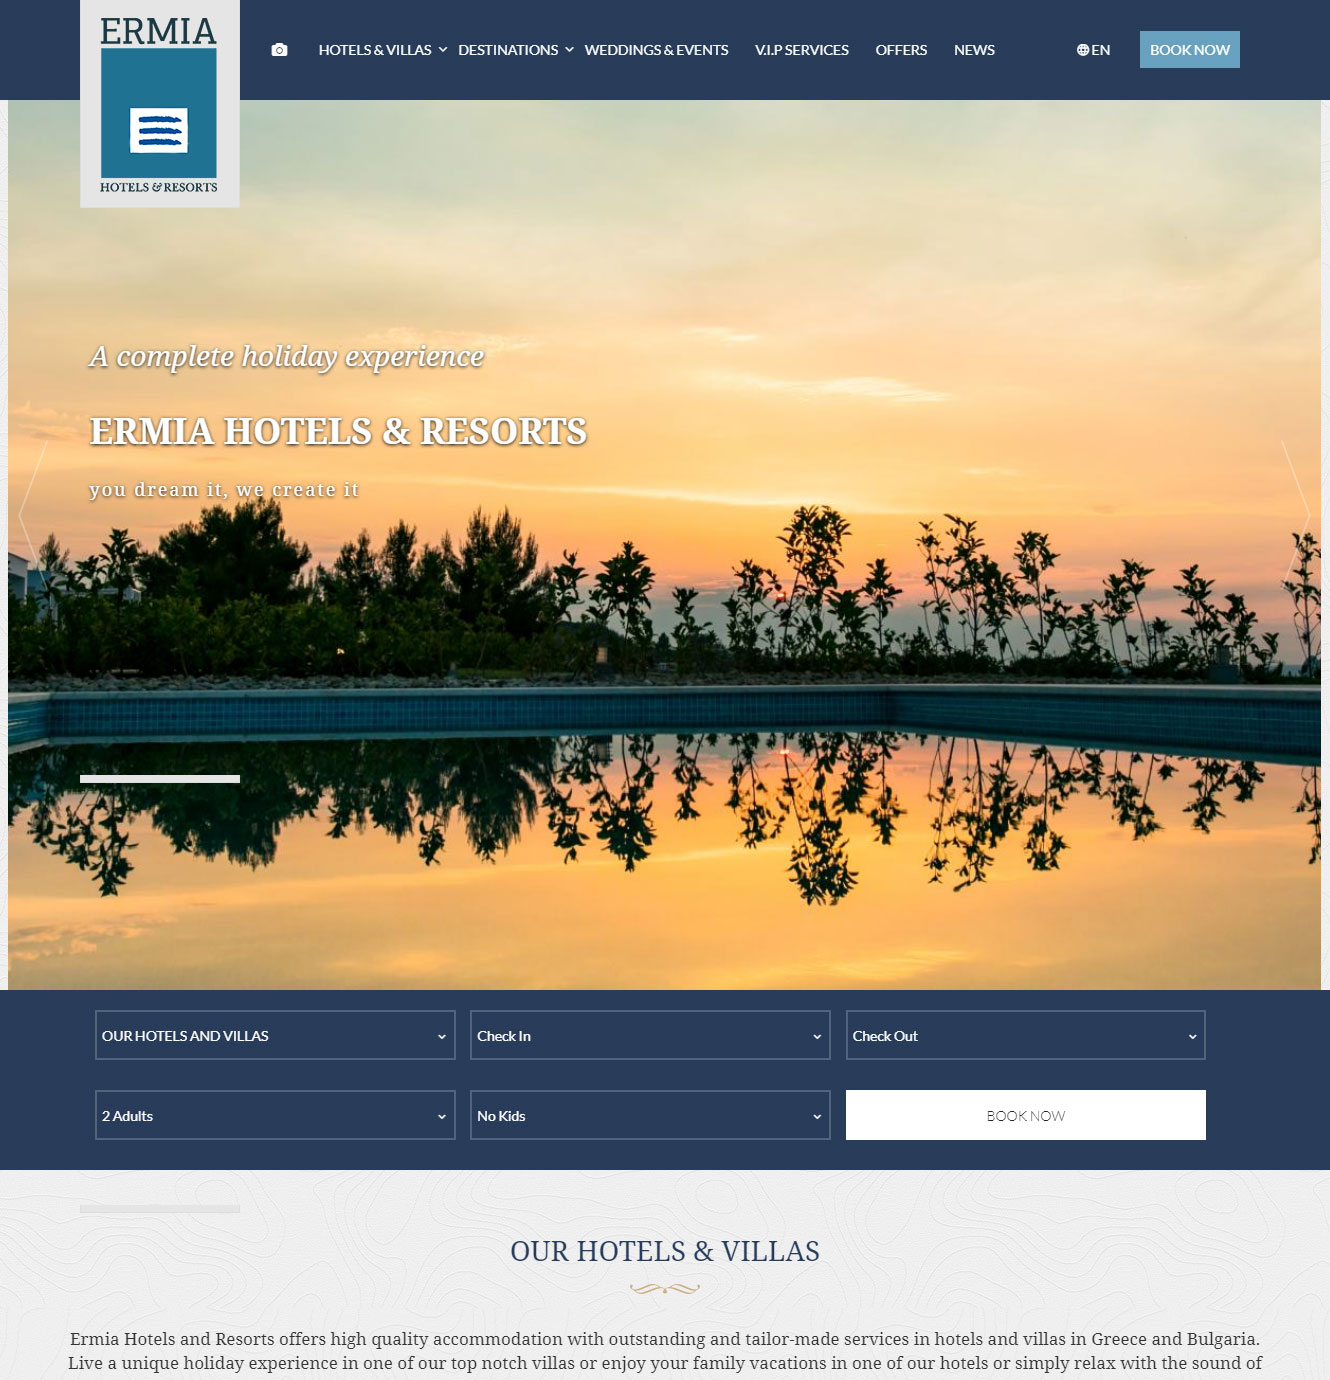 ermia resorts web design by Longtail Interactive